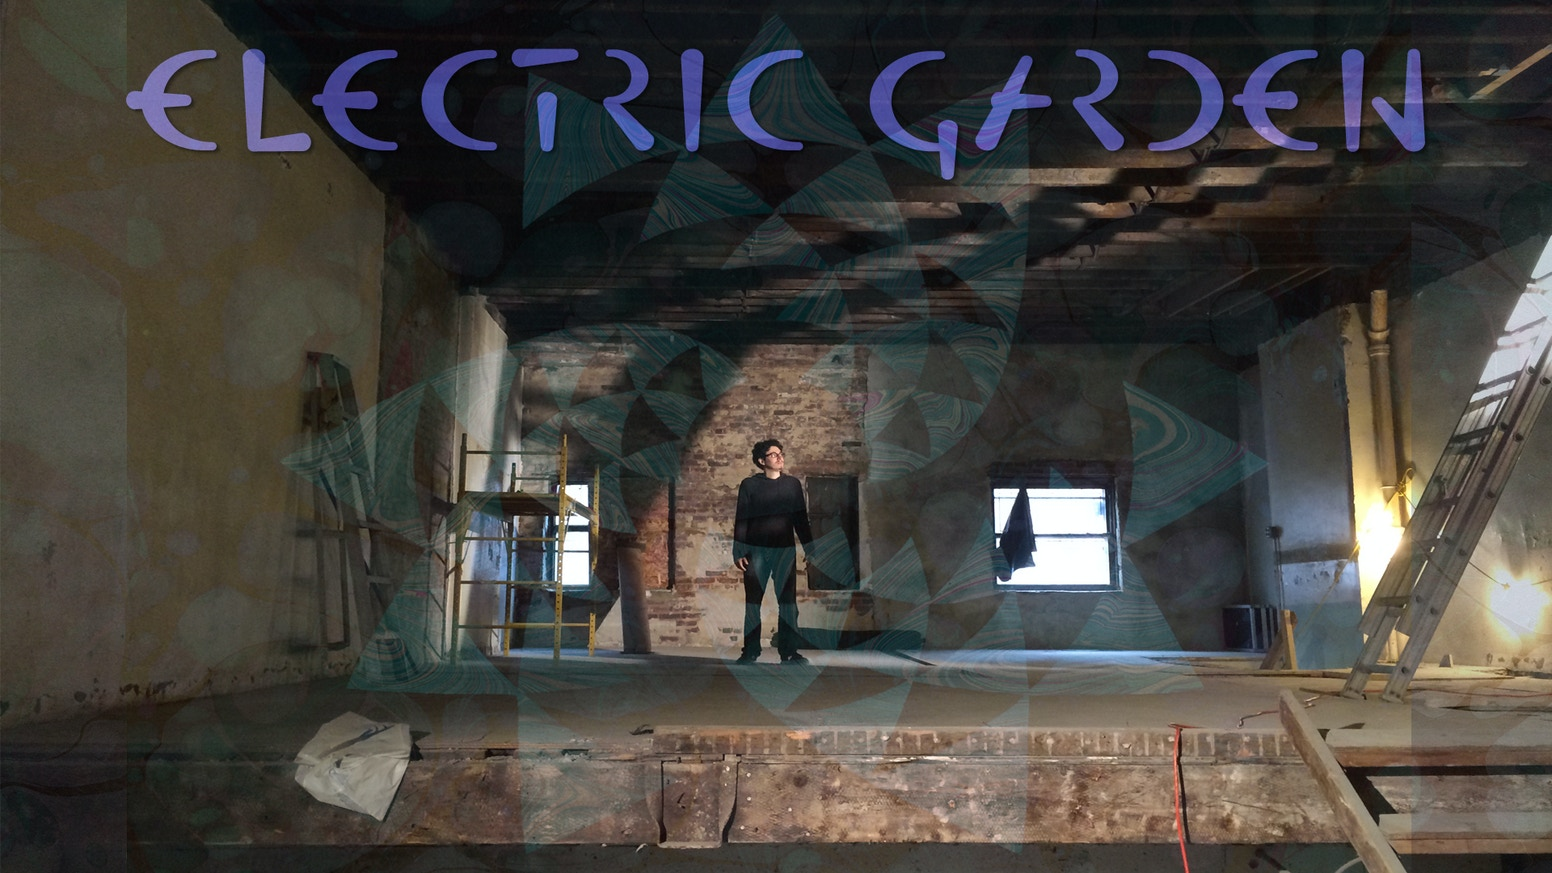 Electric Garden: A Recording Studio And Much More. By Ben